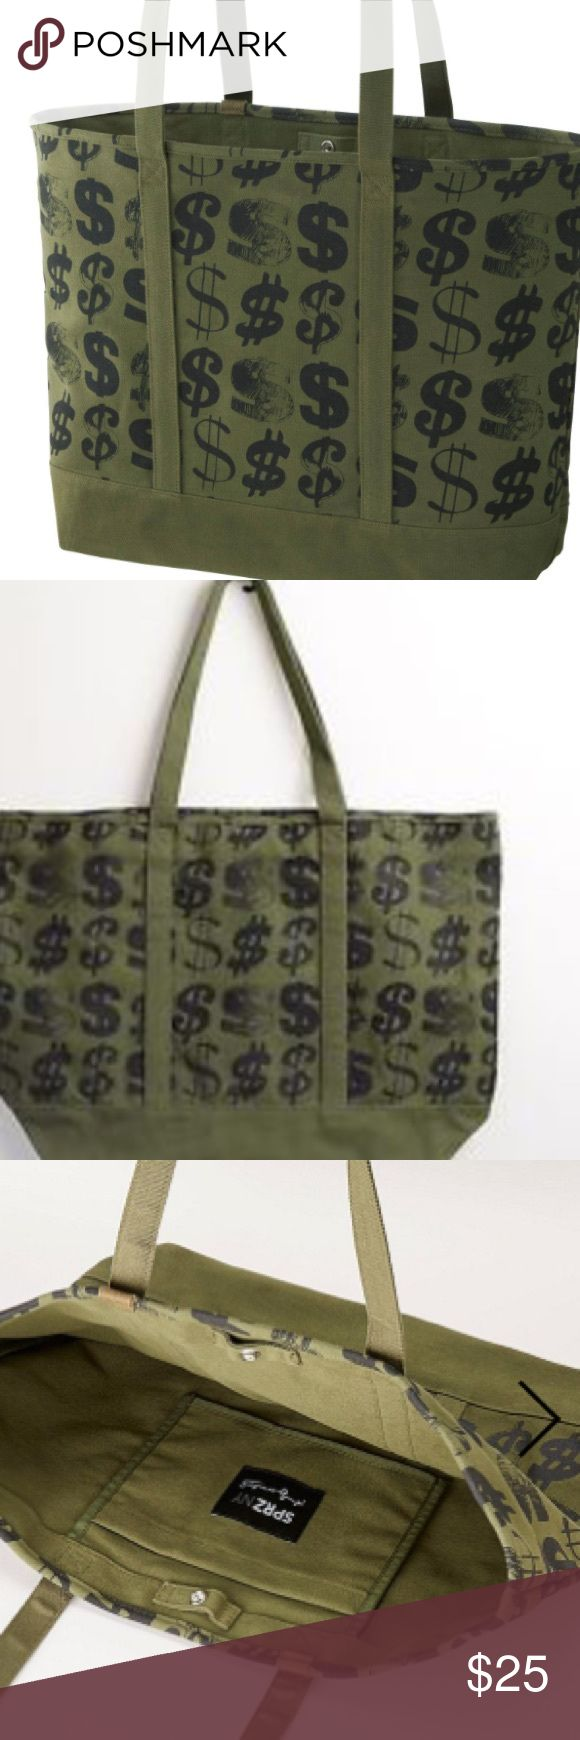 ANDY WARHOL TOTE BAG BRAND NEW ANDY WARHOL TOTE LARGE CANVAS TOTE NEW WITH TAGS Uniqlo Bags Totes